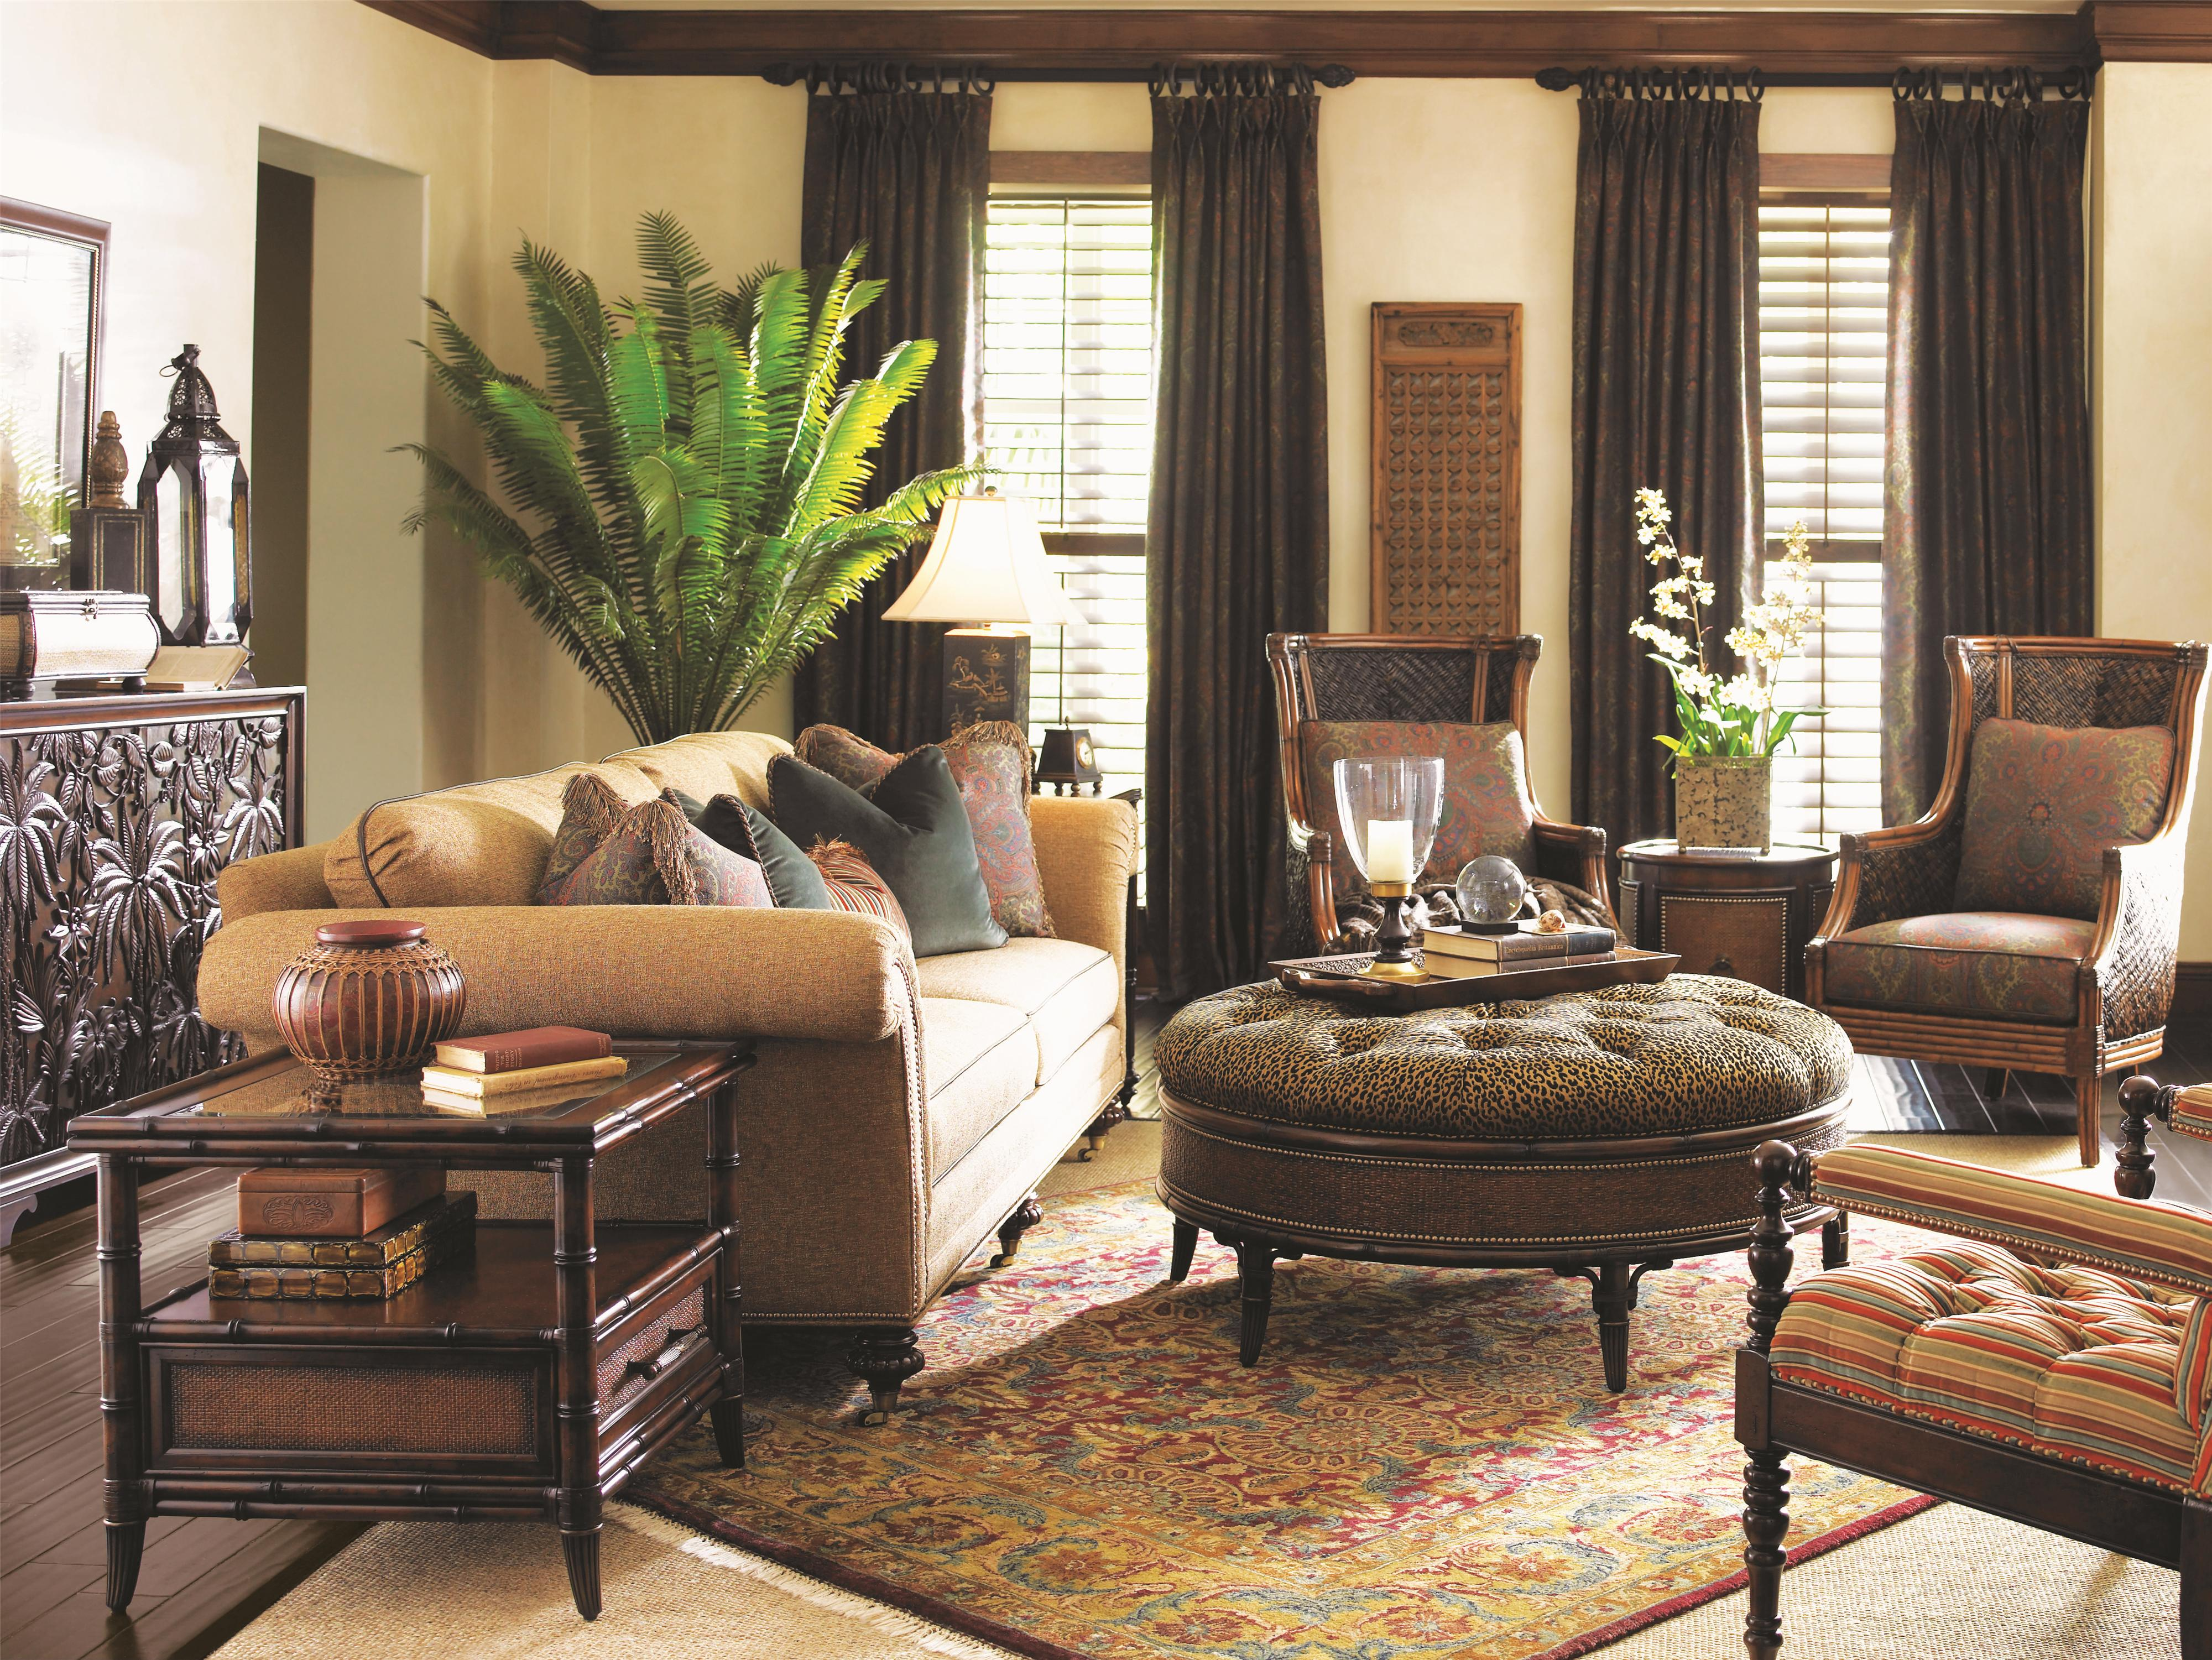 West Indies Interior Decorating Style Landara 545 By Tommy Bahama Home Baer 39s Furniture